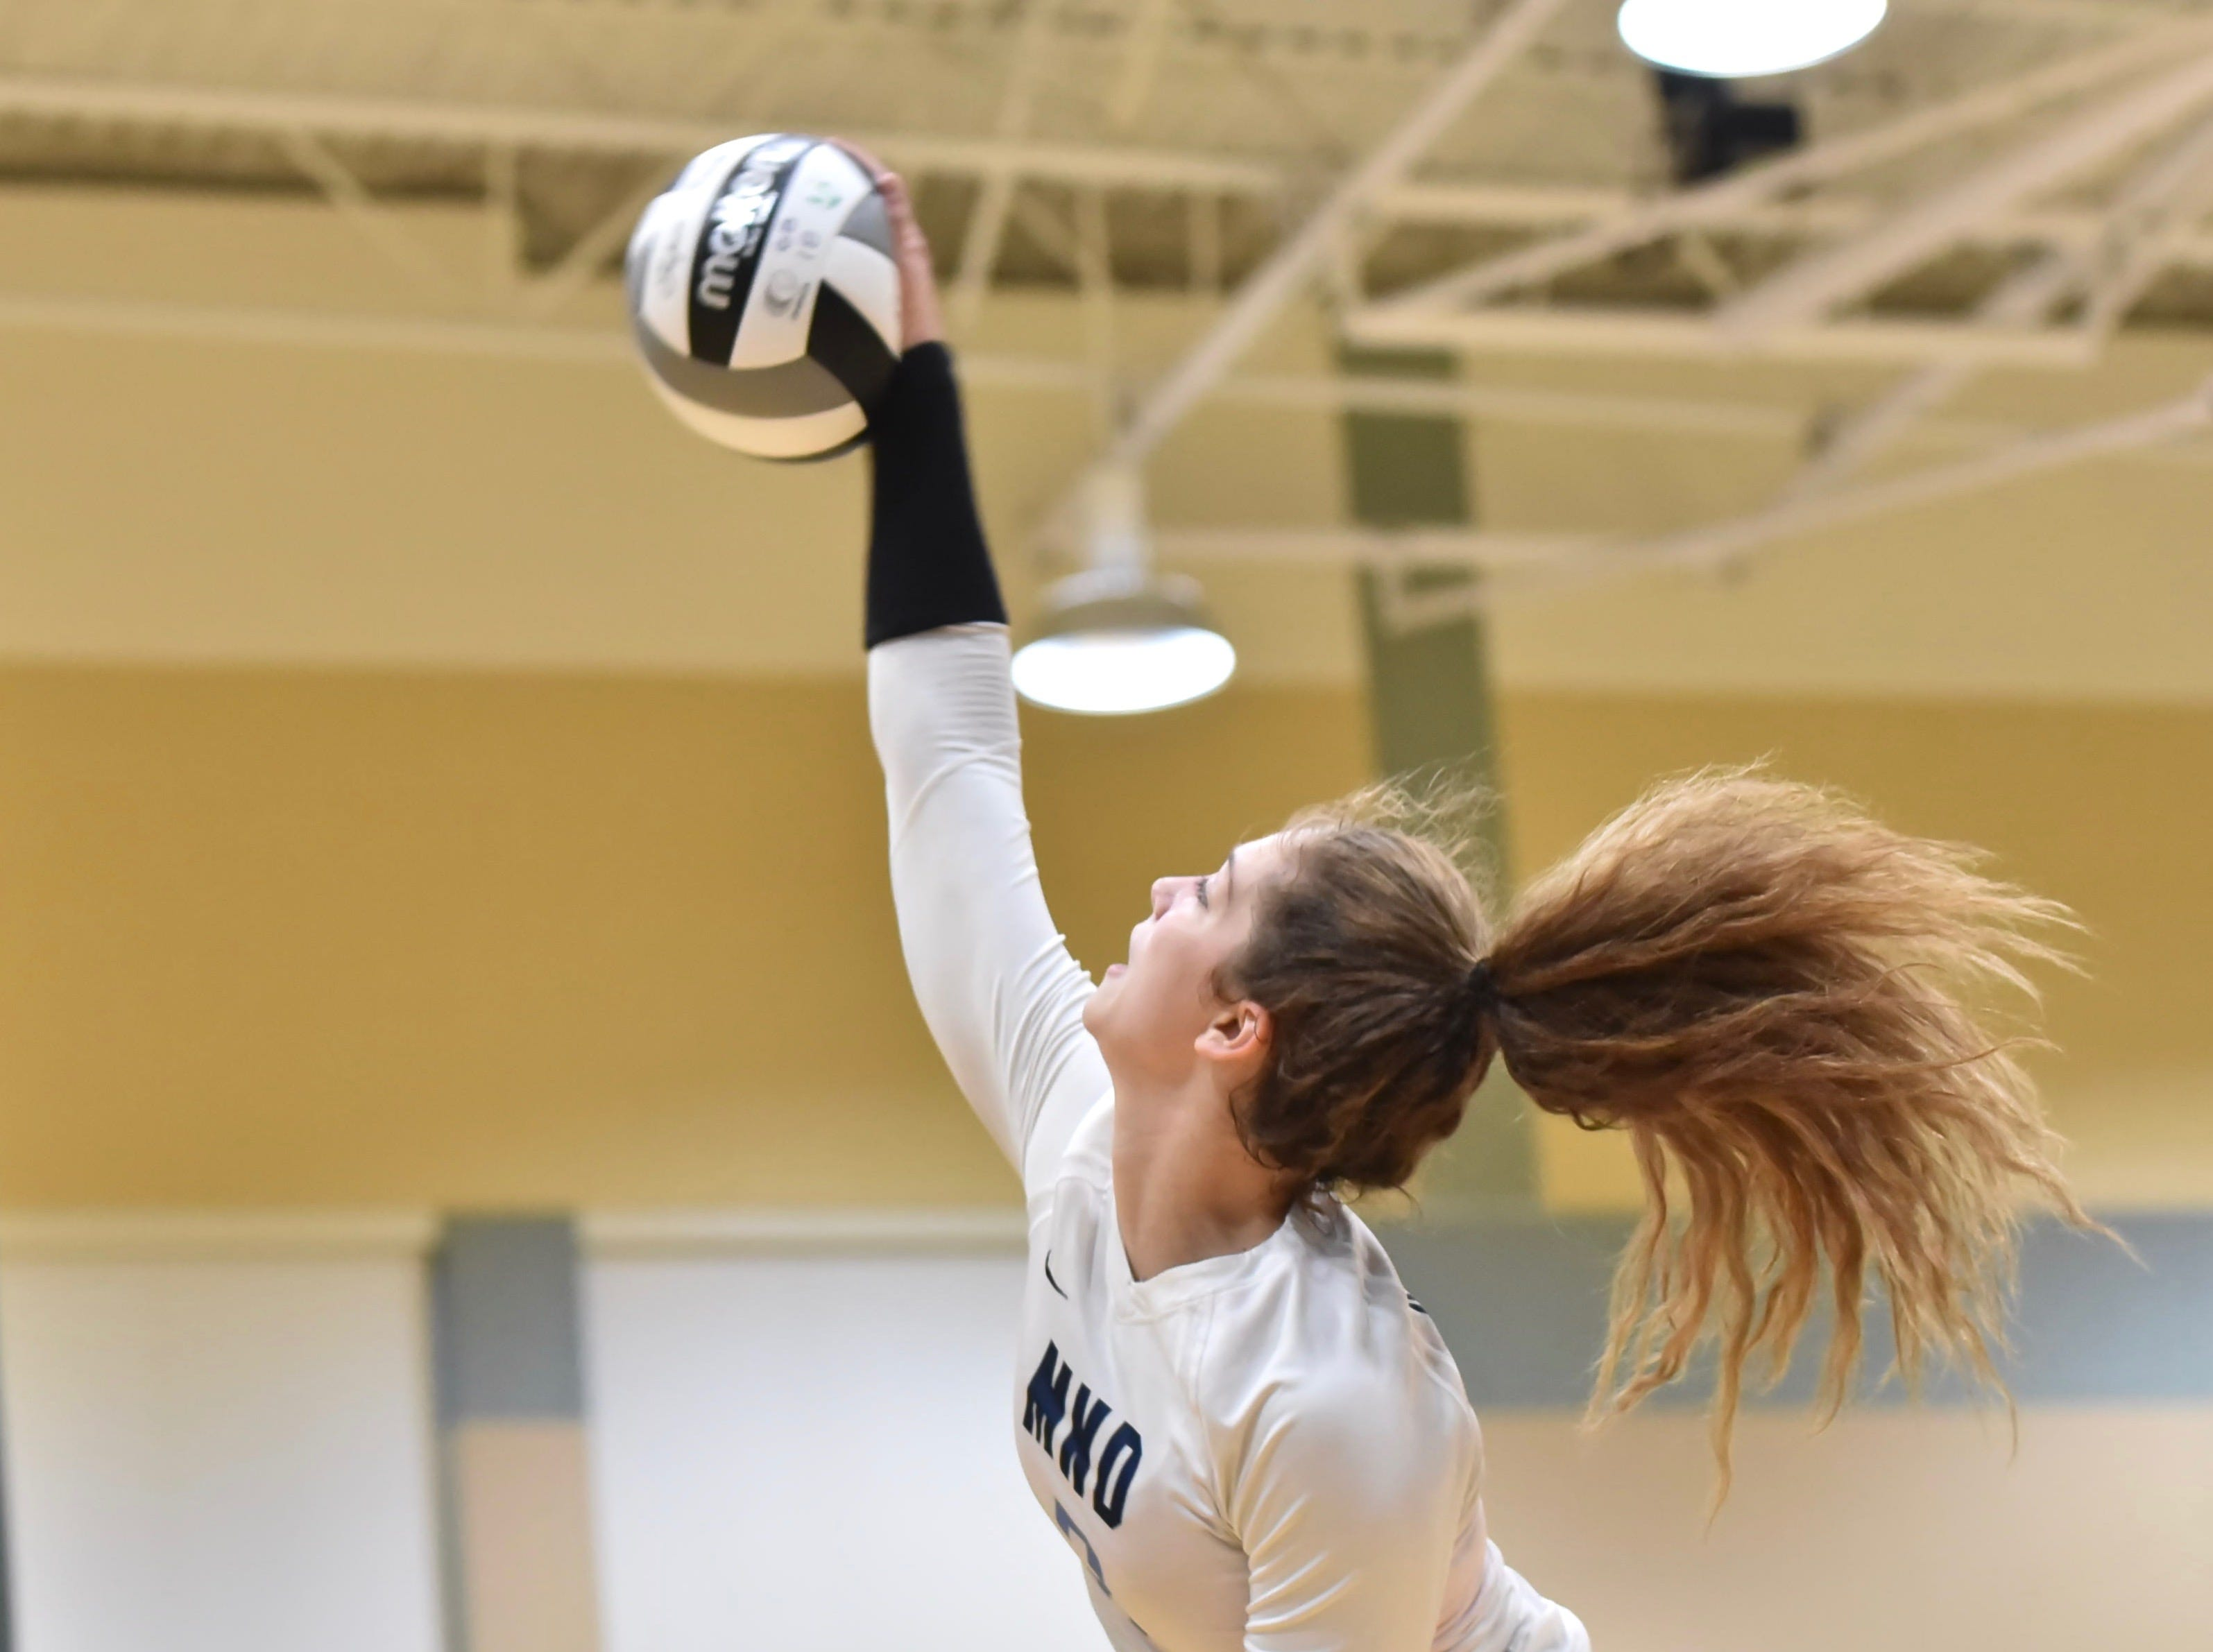 Mount Notre Dame's Sam Wolf spikes the ball against Ursuline Tuesday, Sept. 11, 2018 at Ursuline Academy